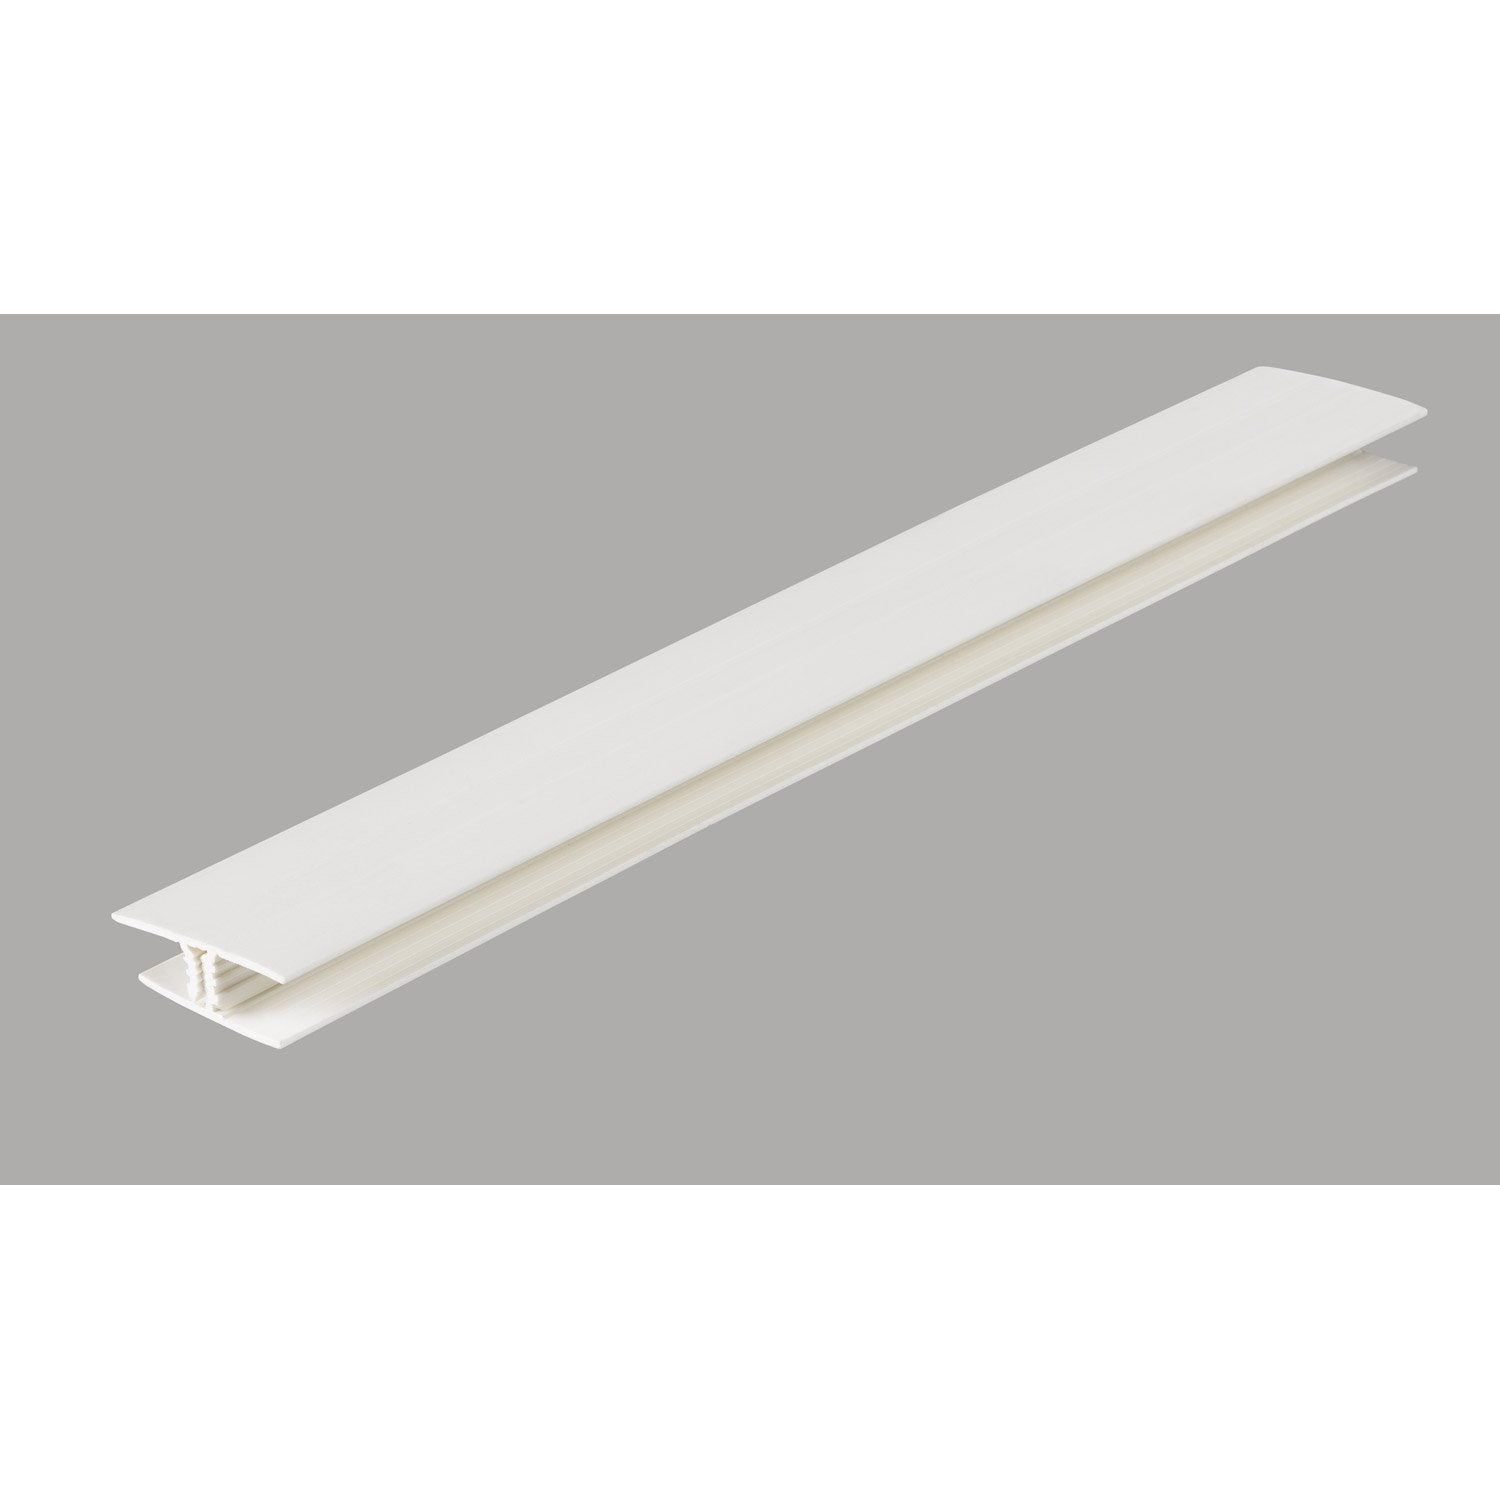 Lambris pvc pour plafond leroy merlin - Canvas pvc leroy merlin ...